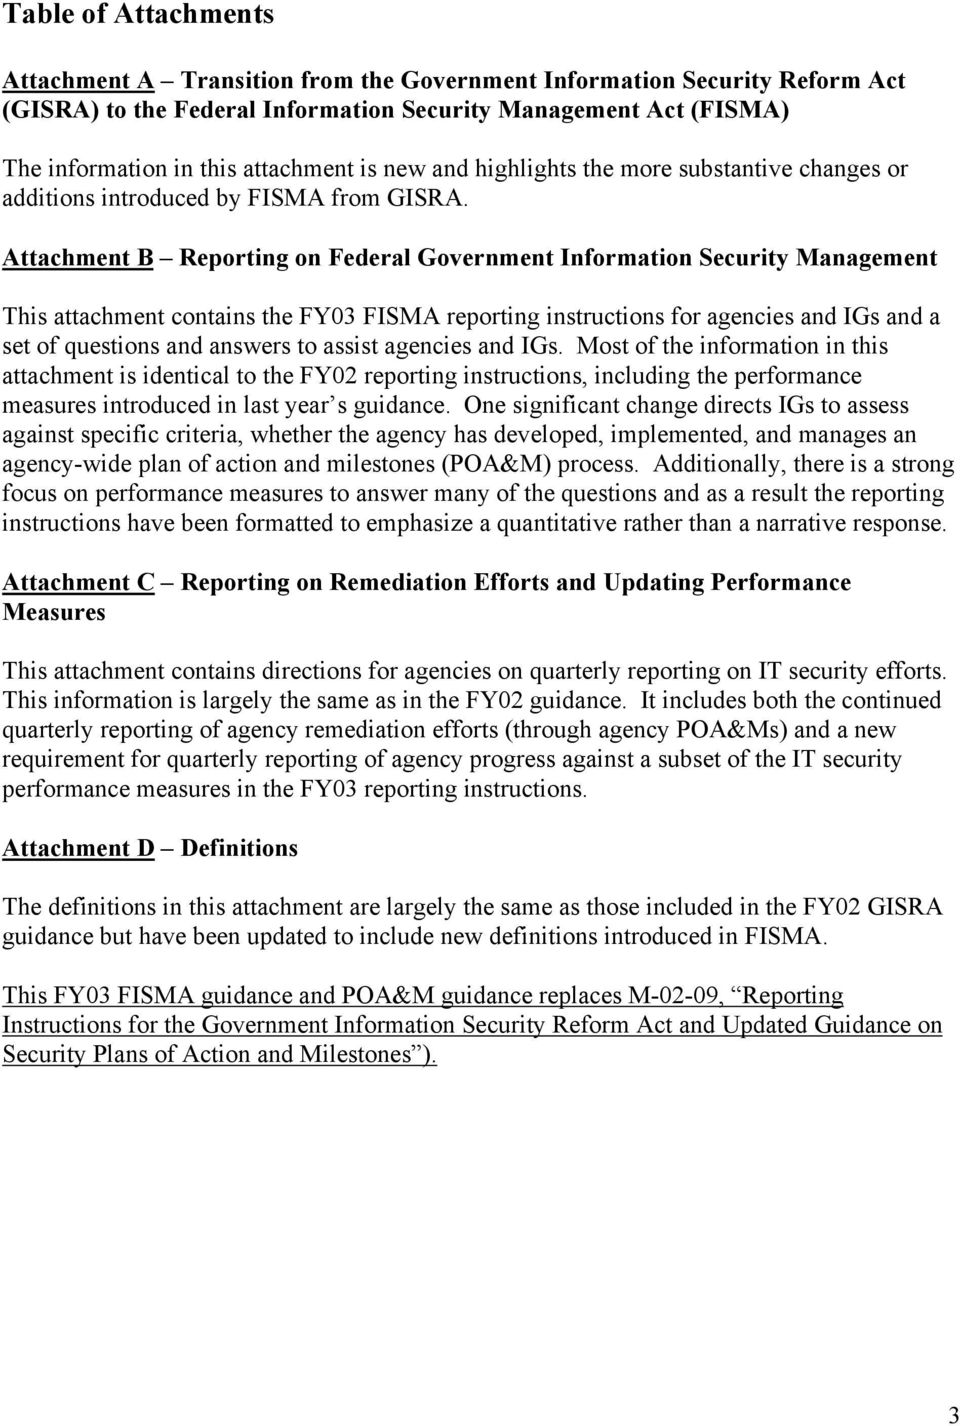 Attachment B Reporting on Federal Government Information Security Management This attachment contains the FY03 FISMA reporting instructions for agencies and IGs and a set of questions and answers to